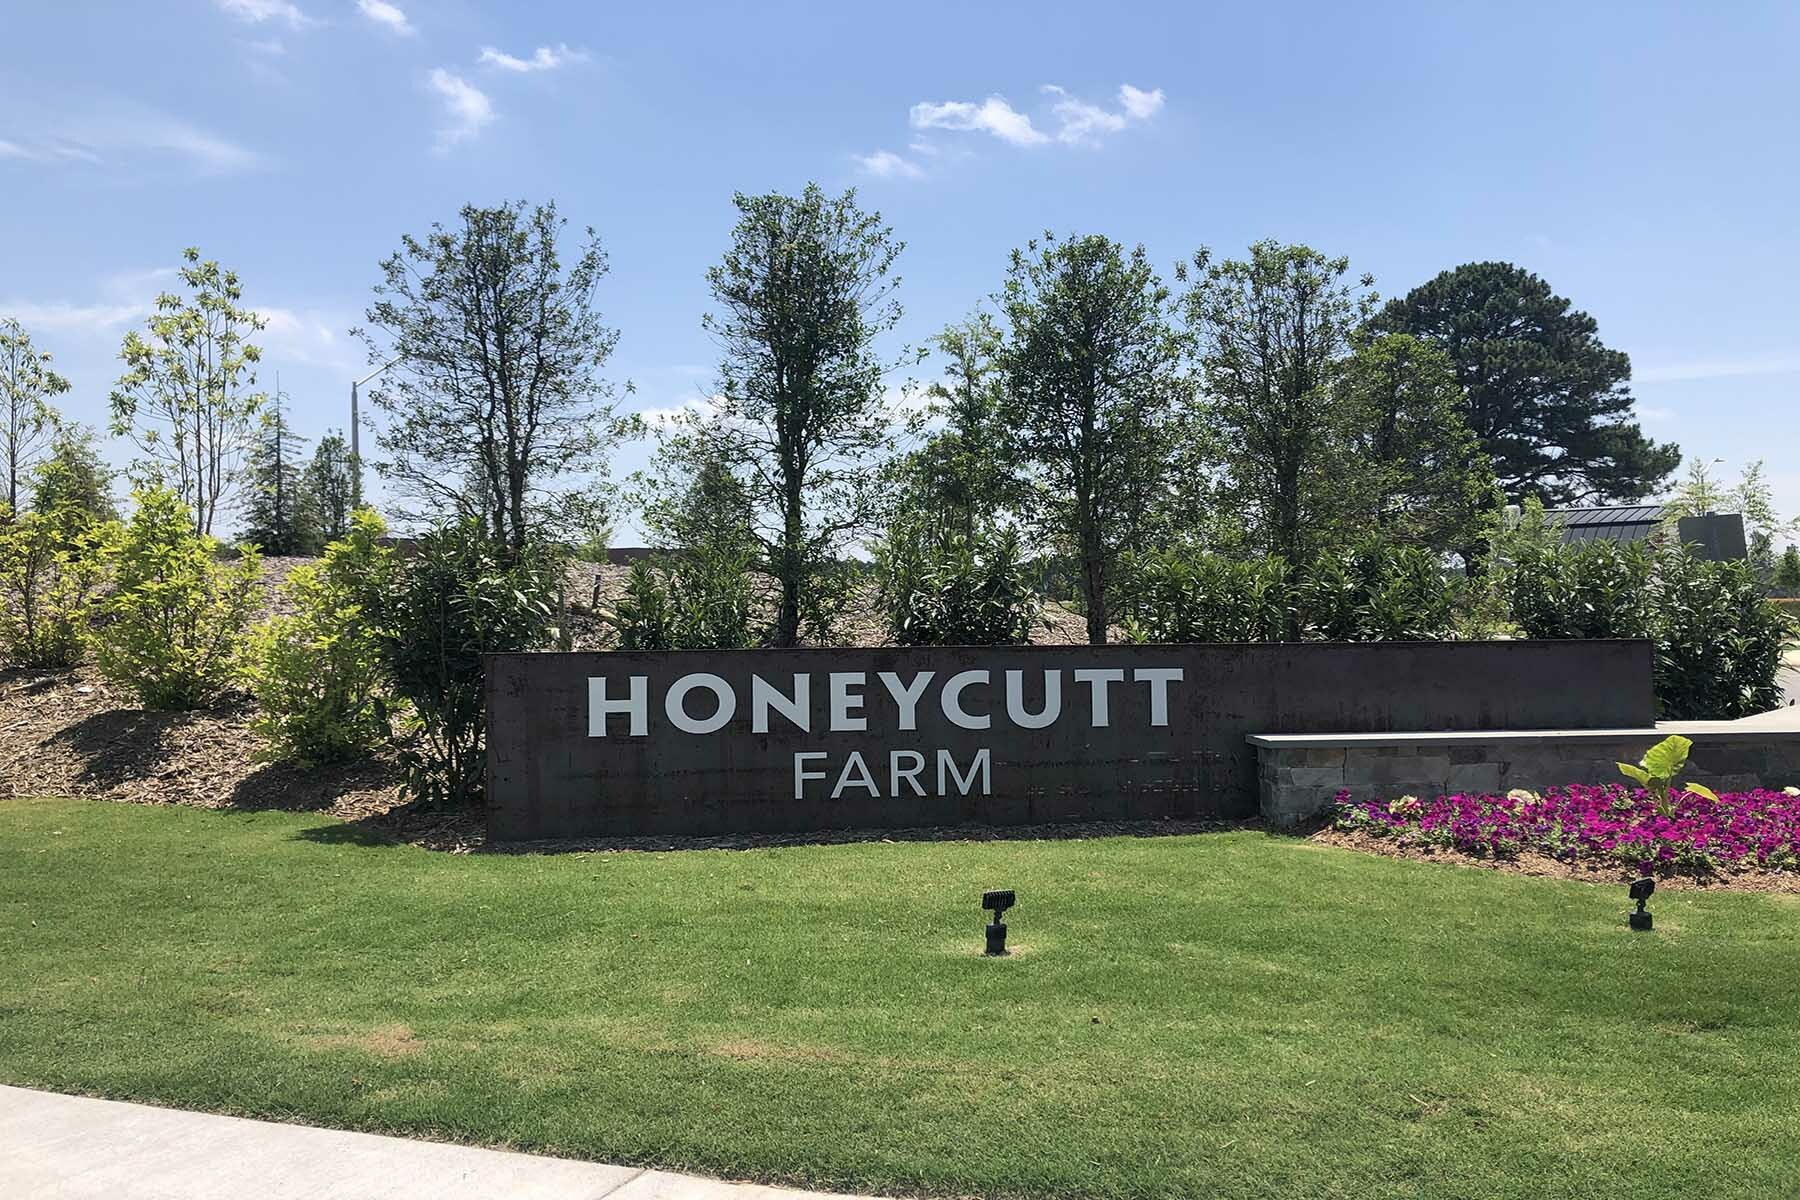 Honeycutt Farm Entrance